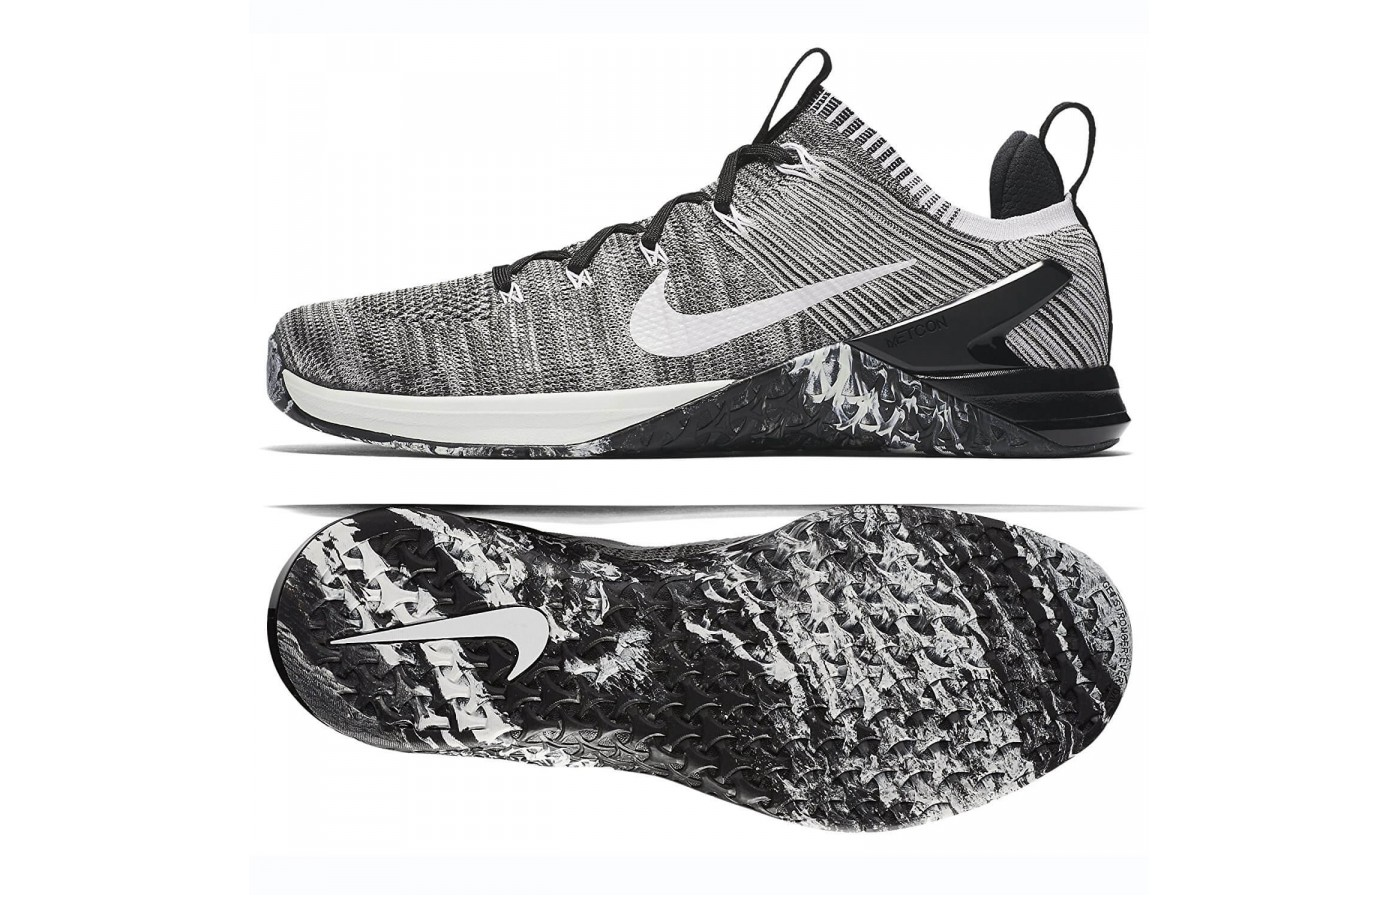 the latest f4970 aeb4b ... The Nike Metcon DSX Flyknit 2 has a higher drop from heel to toe  compared to ...